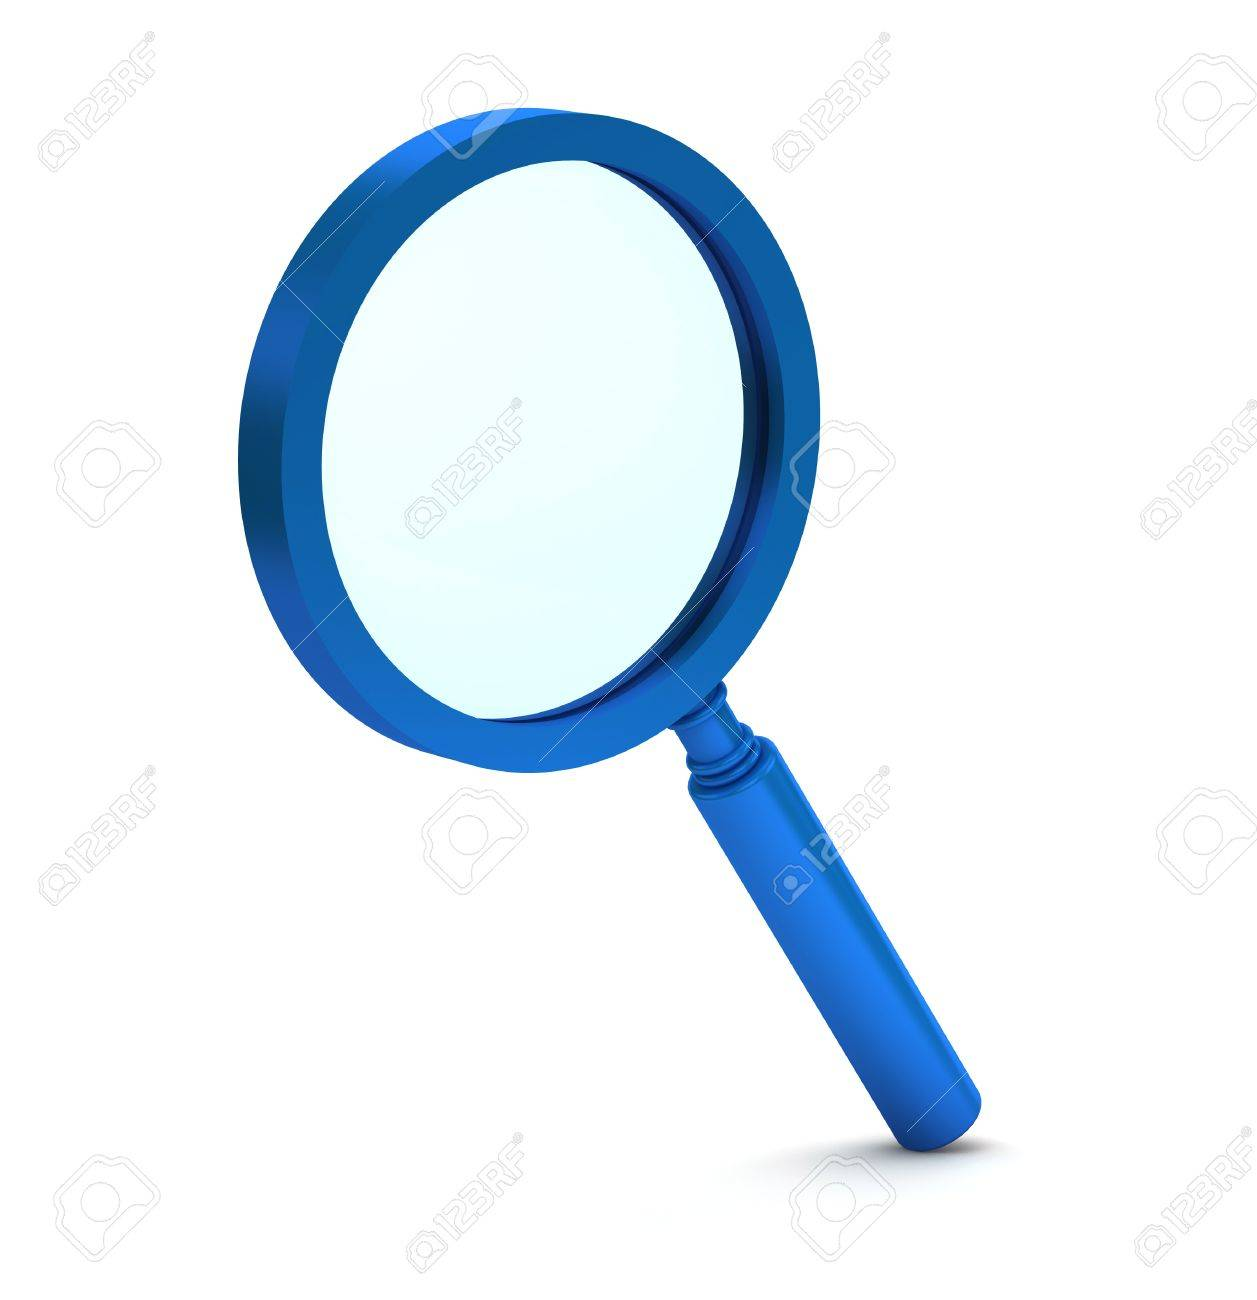 Magnify Glass Images